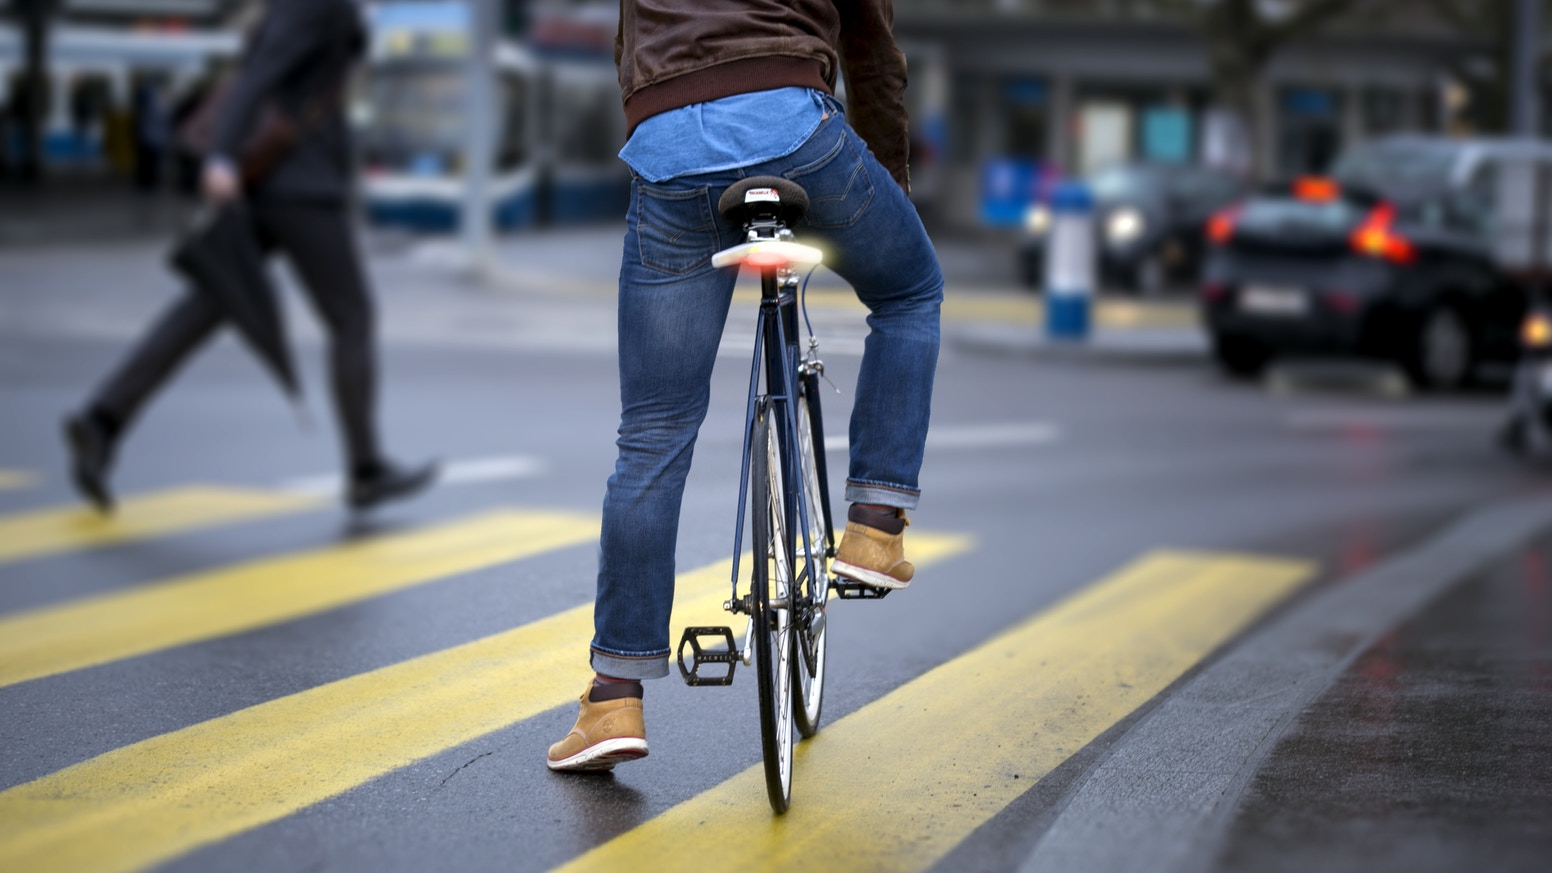 Blinkers is the one thing that was missing for cyclists to be safer and to be a natural part of the road.